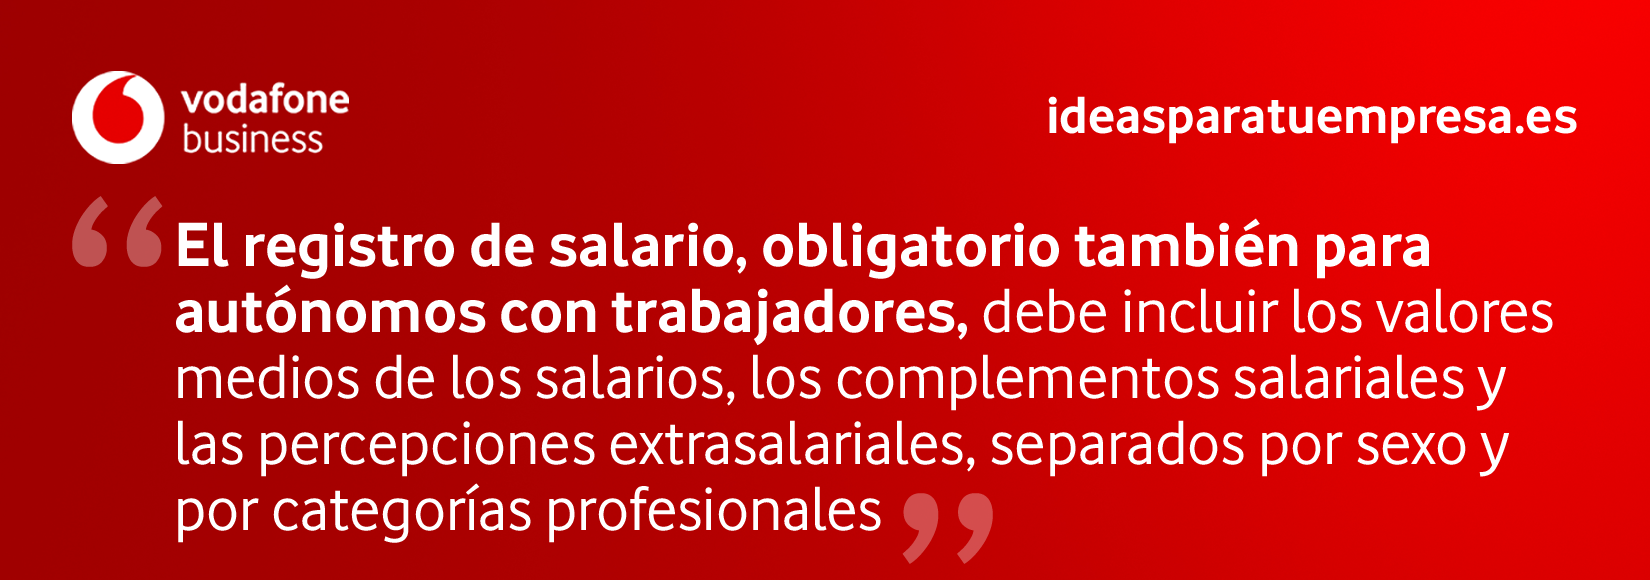 Quote 2 registro salarial